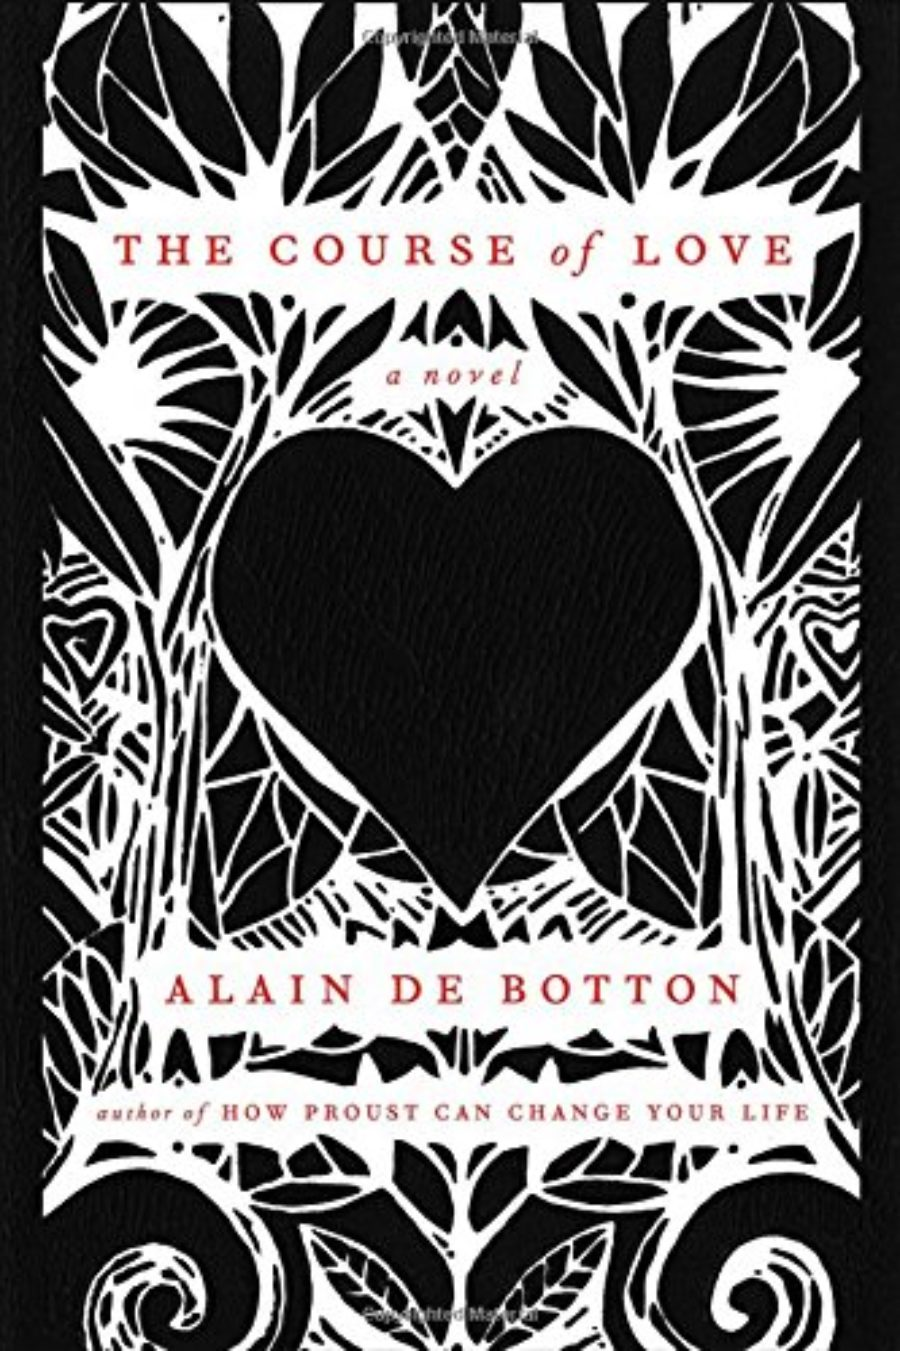 Alain De Botton  The True Hard Work Of Love And Relationships  The  Alain De Botton  The True Hard Work Of Love And Relationships  The On  Being Project